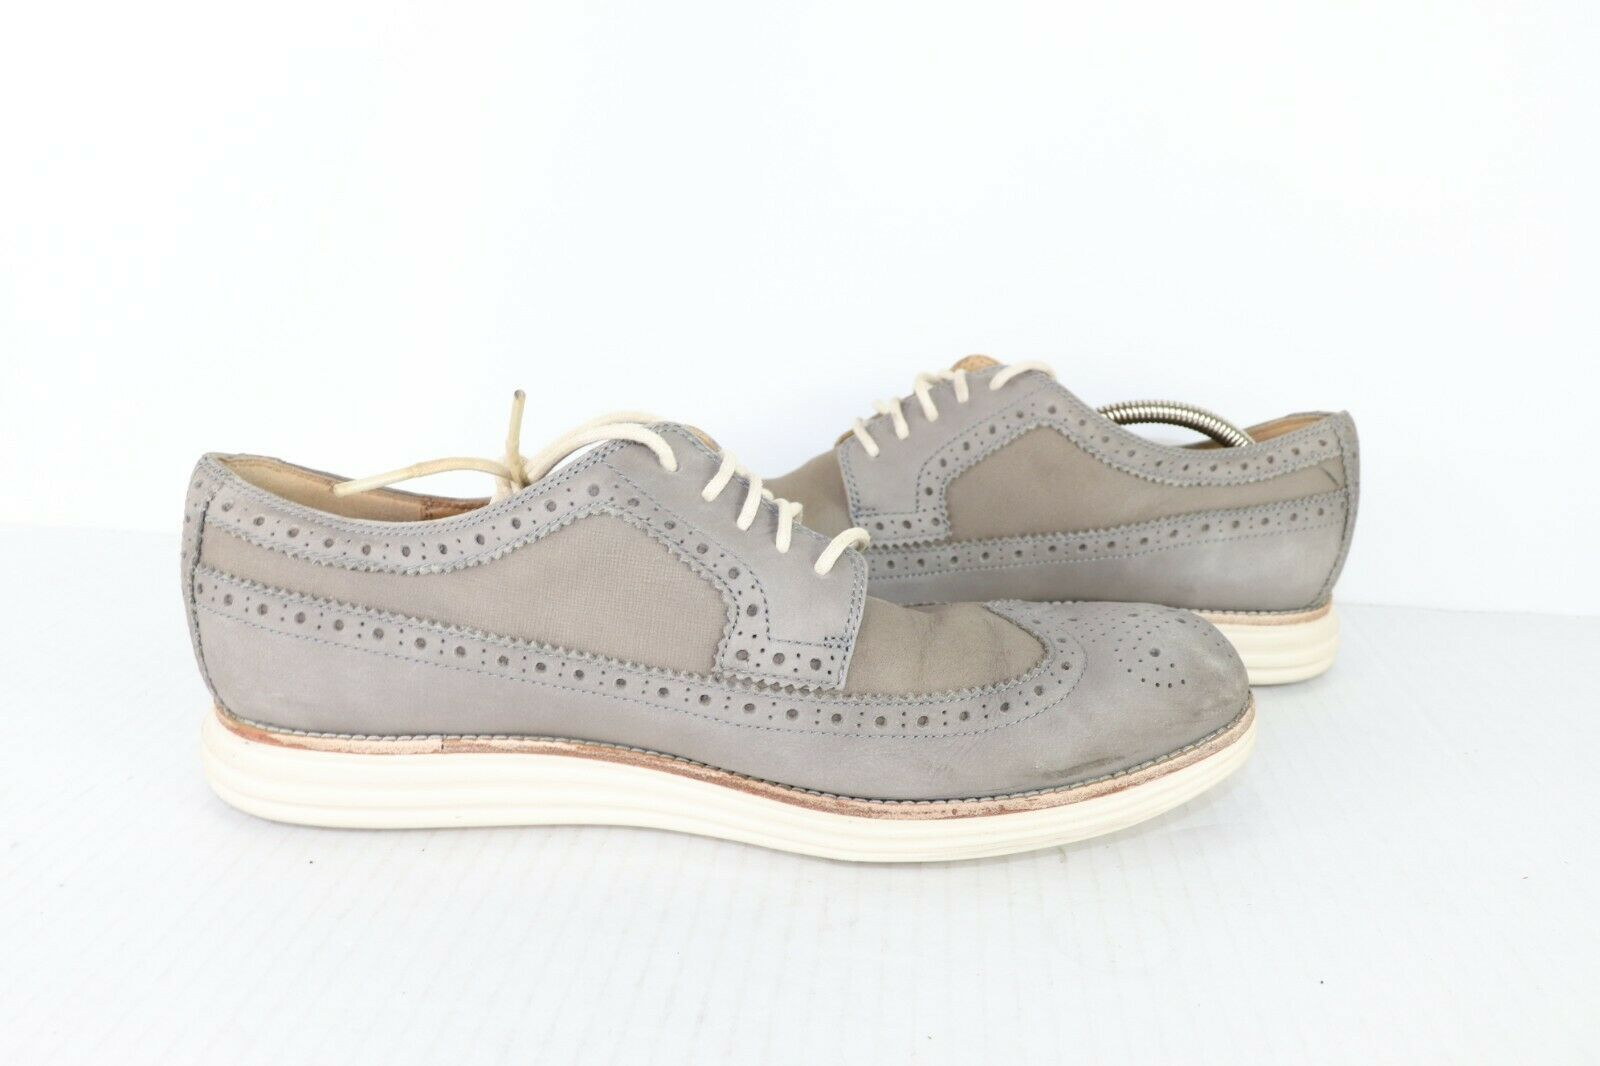 Cole Haan Lunargrand Hommes Taille 11.5 M Cuir Bout Richelieus Robe Chaussures